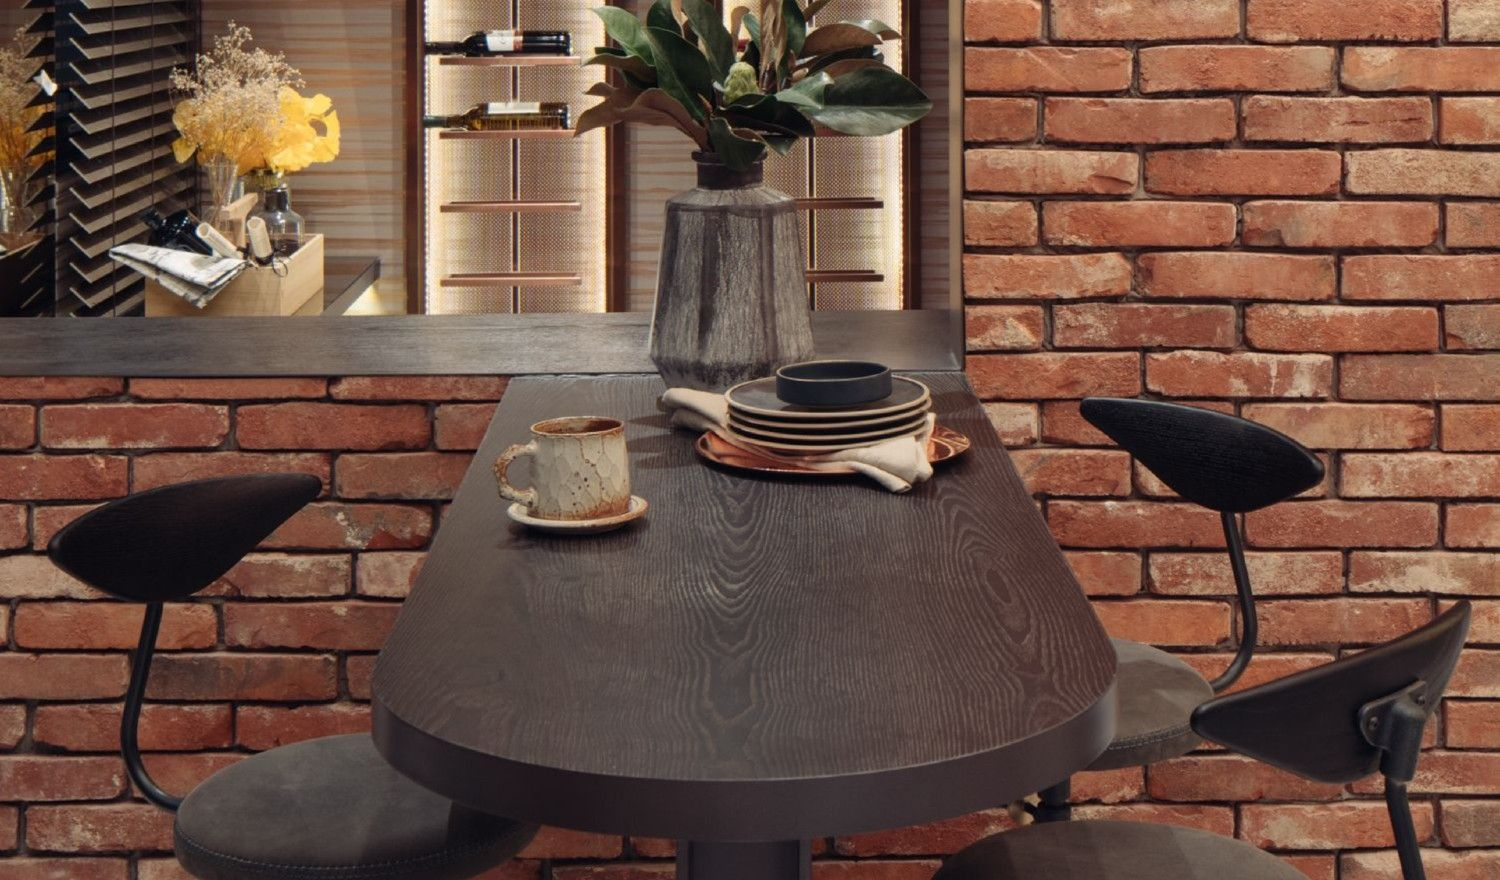 View at Kismis: Get Home Design Ideas From Show Units Inspired by European Vineyards